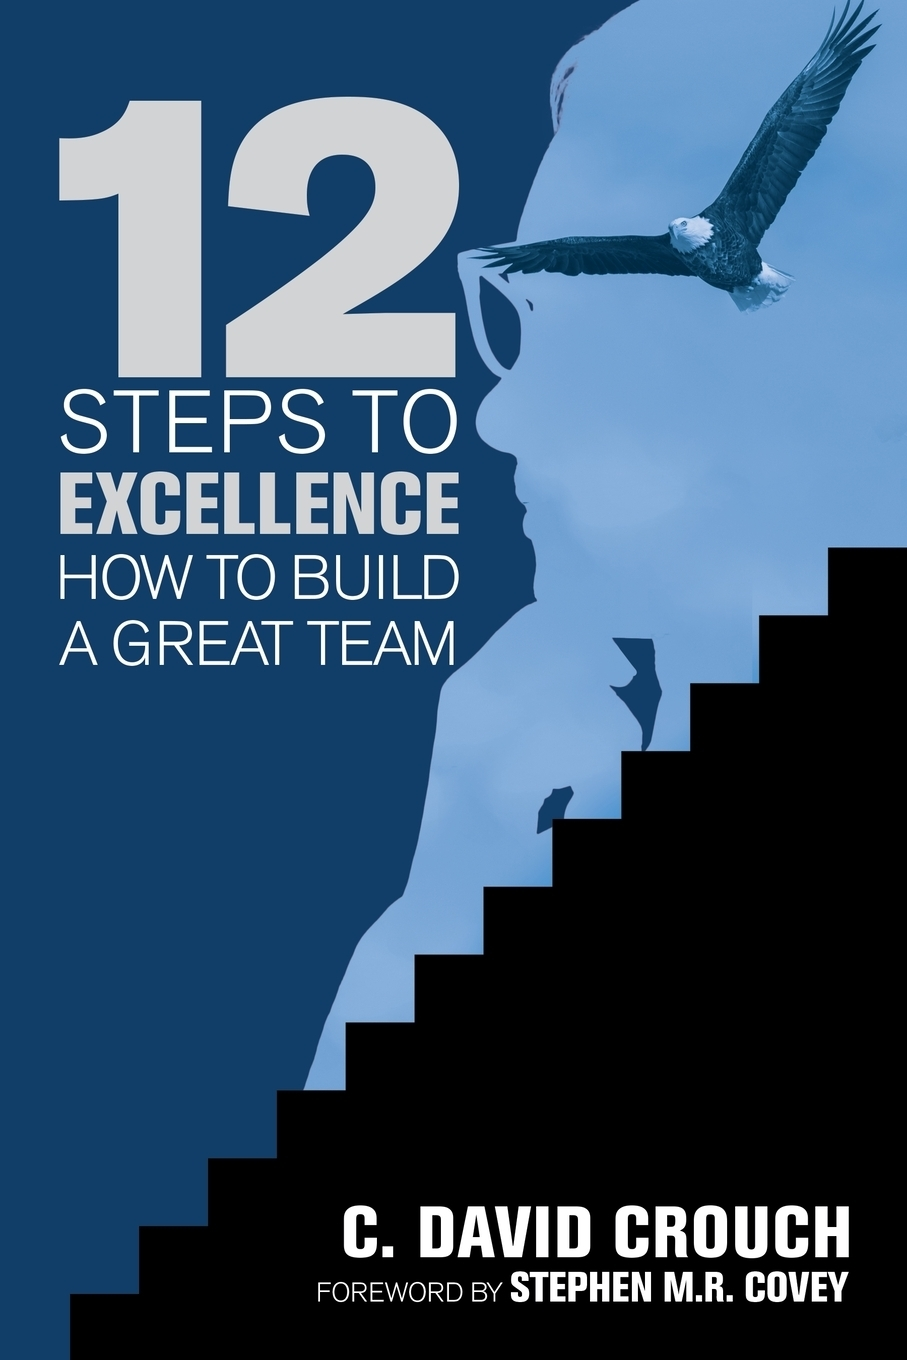 C. David Crouch. 12 Steps to Excellence. How to Build a Great Team